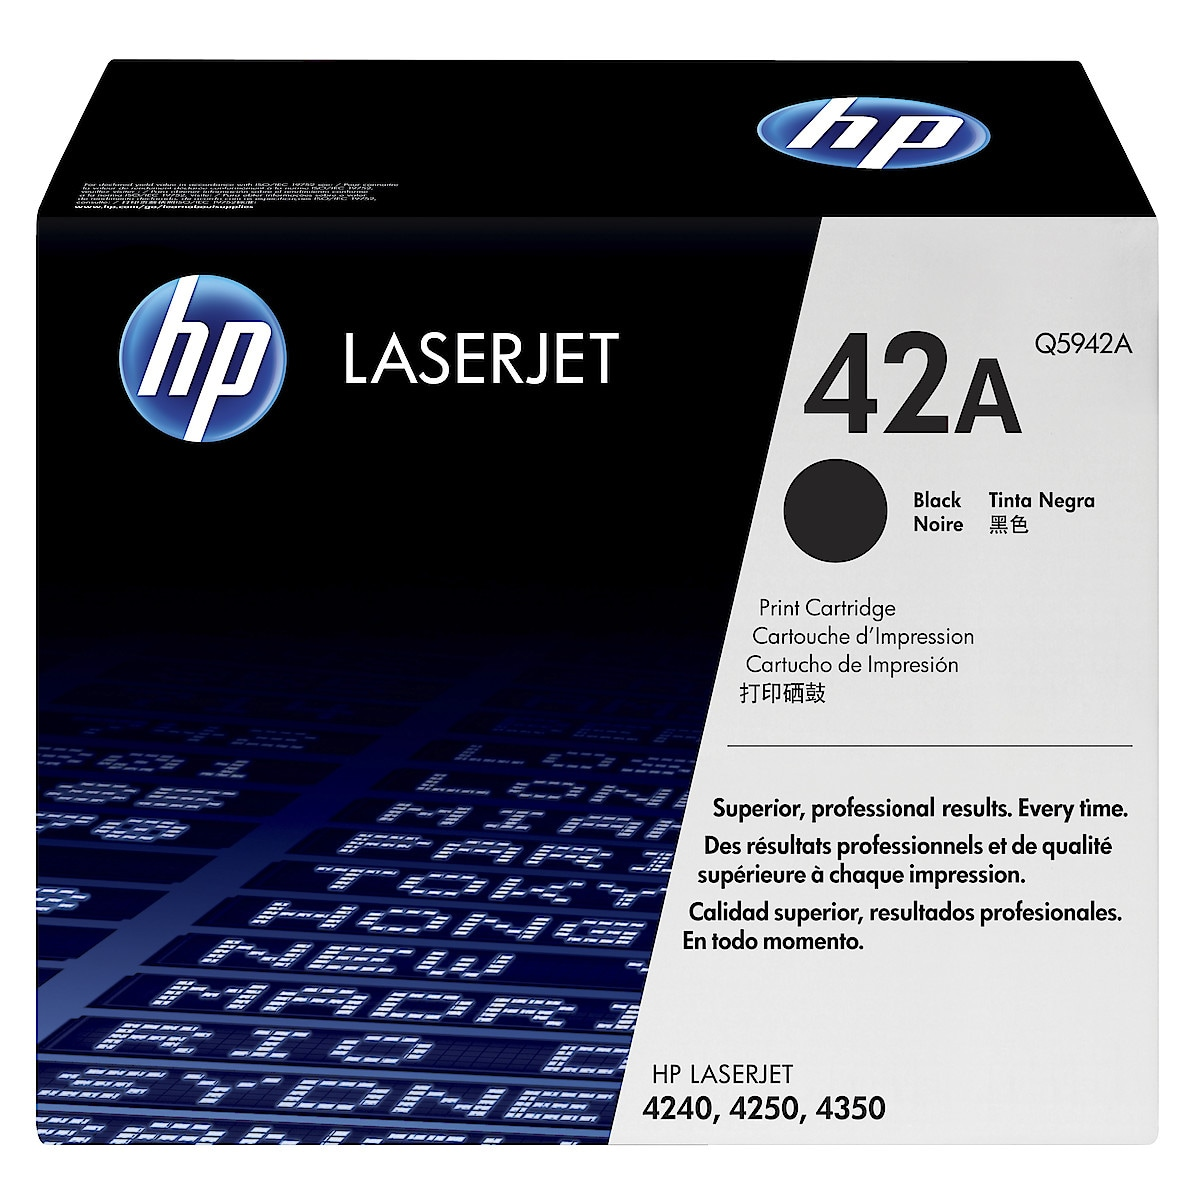 Toner for laserskrivere HP Q5942A